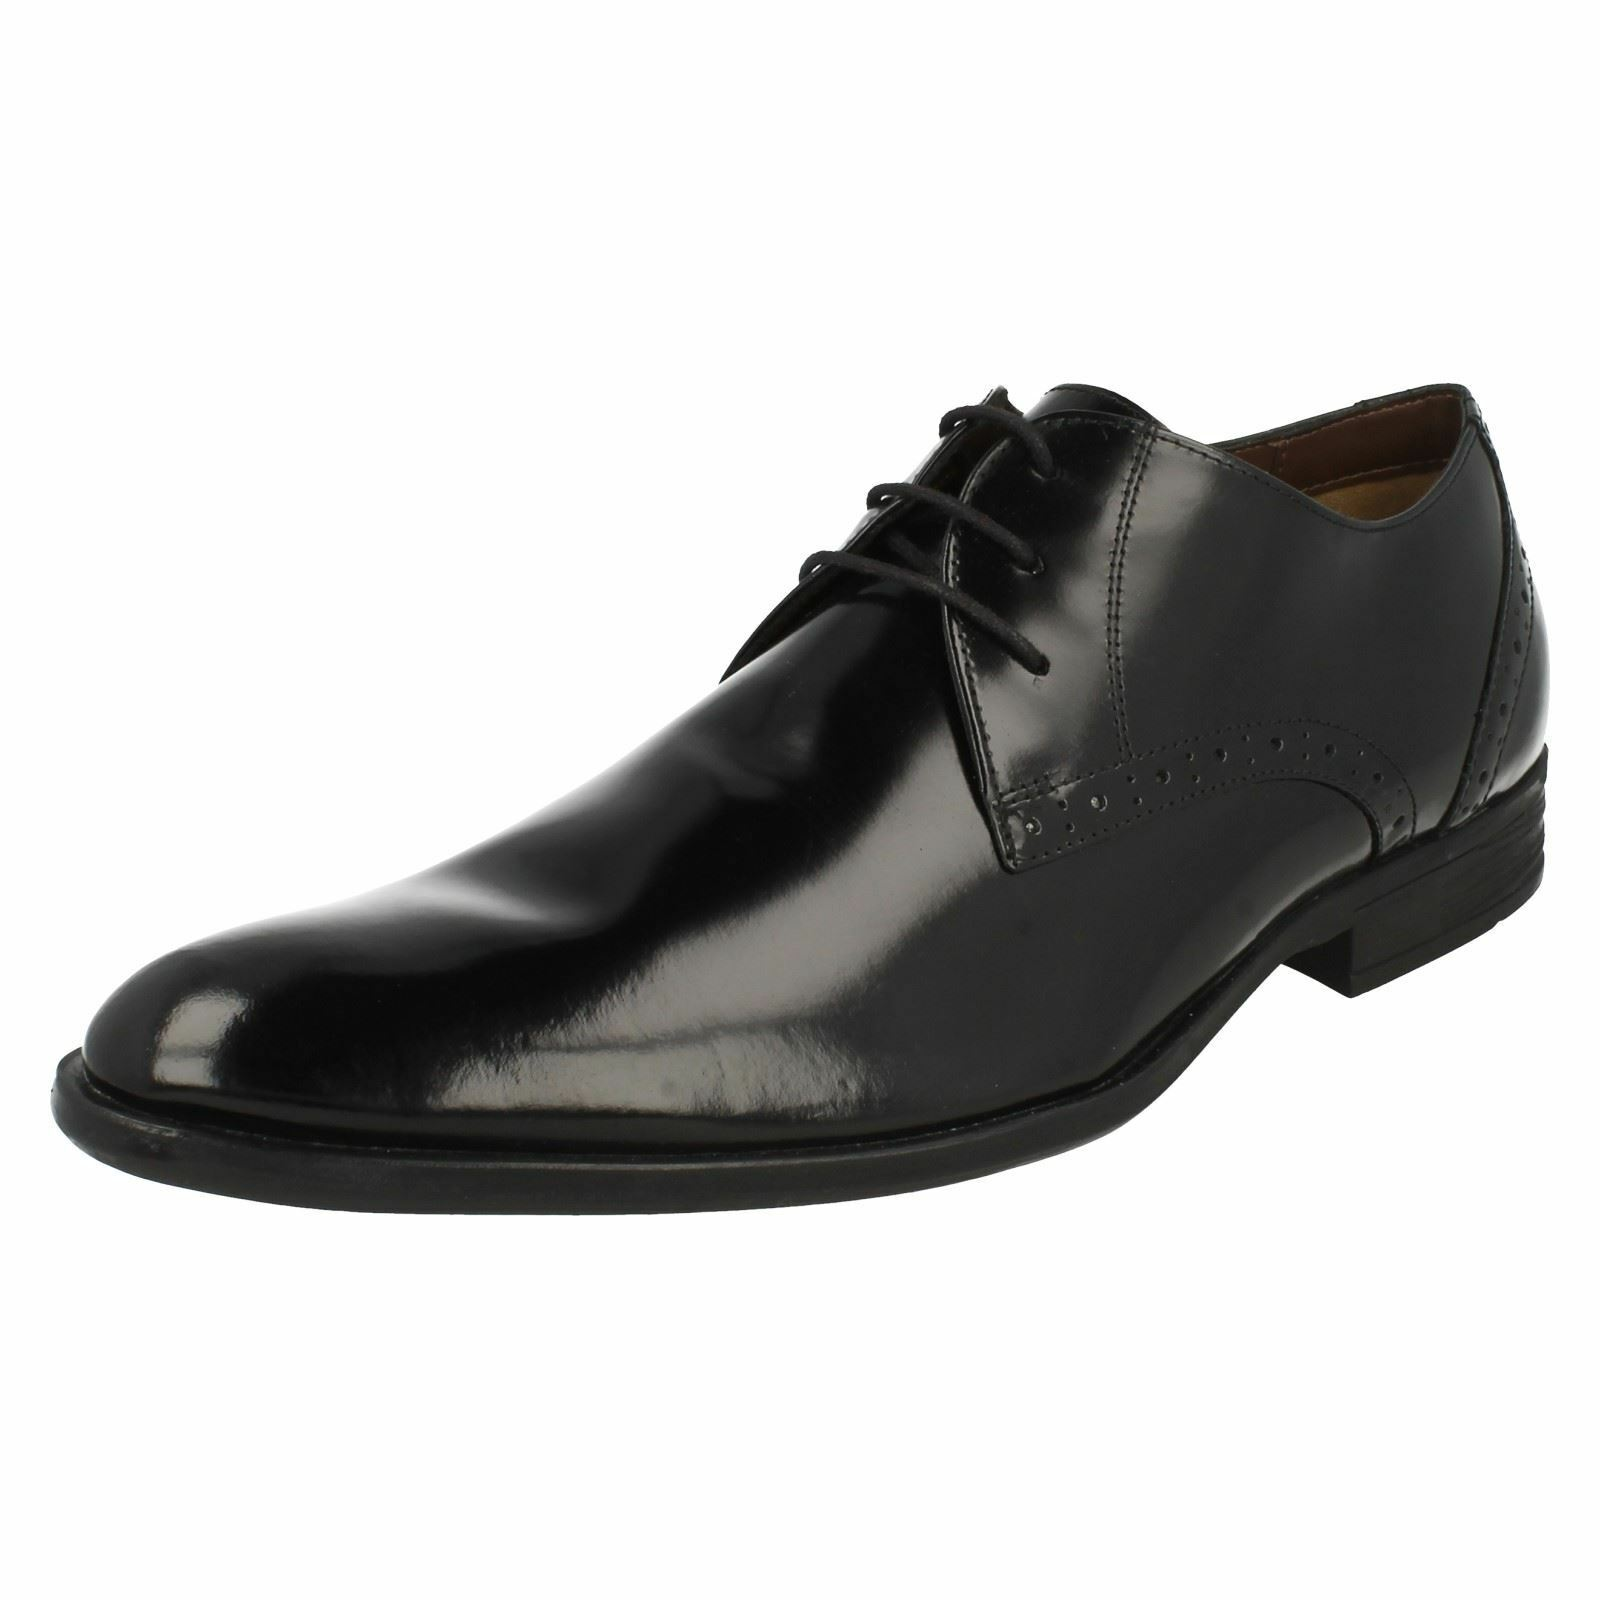 Mens KENSINGTON Black leather lace up shoes By Hush Puppies £ 45.00